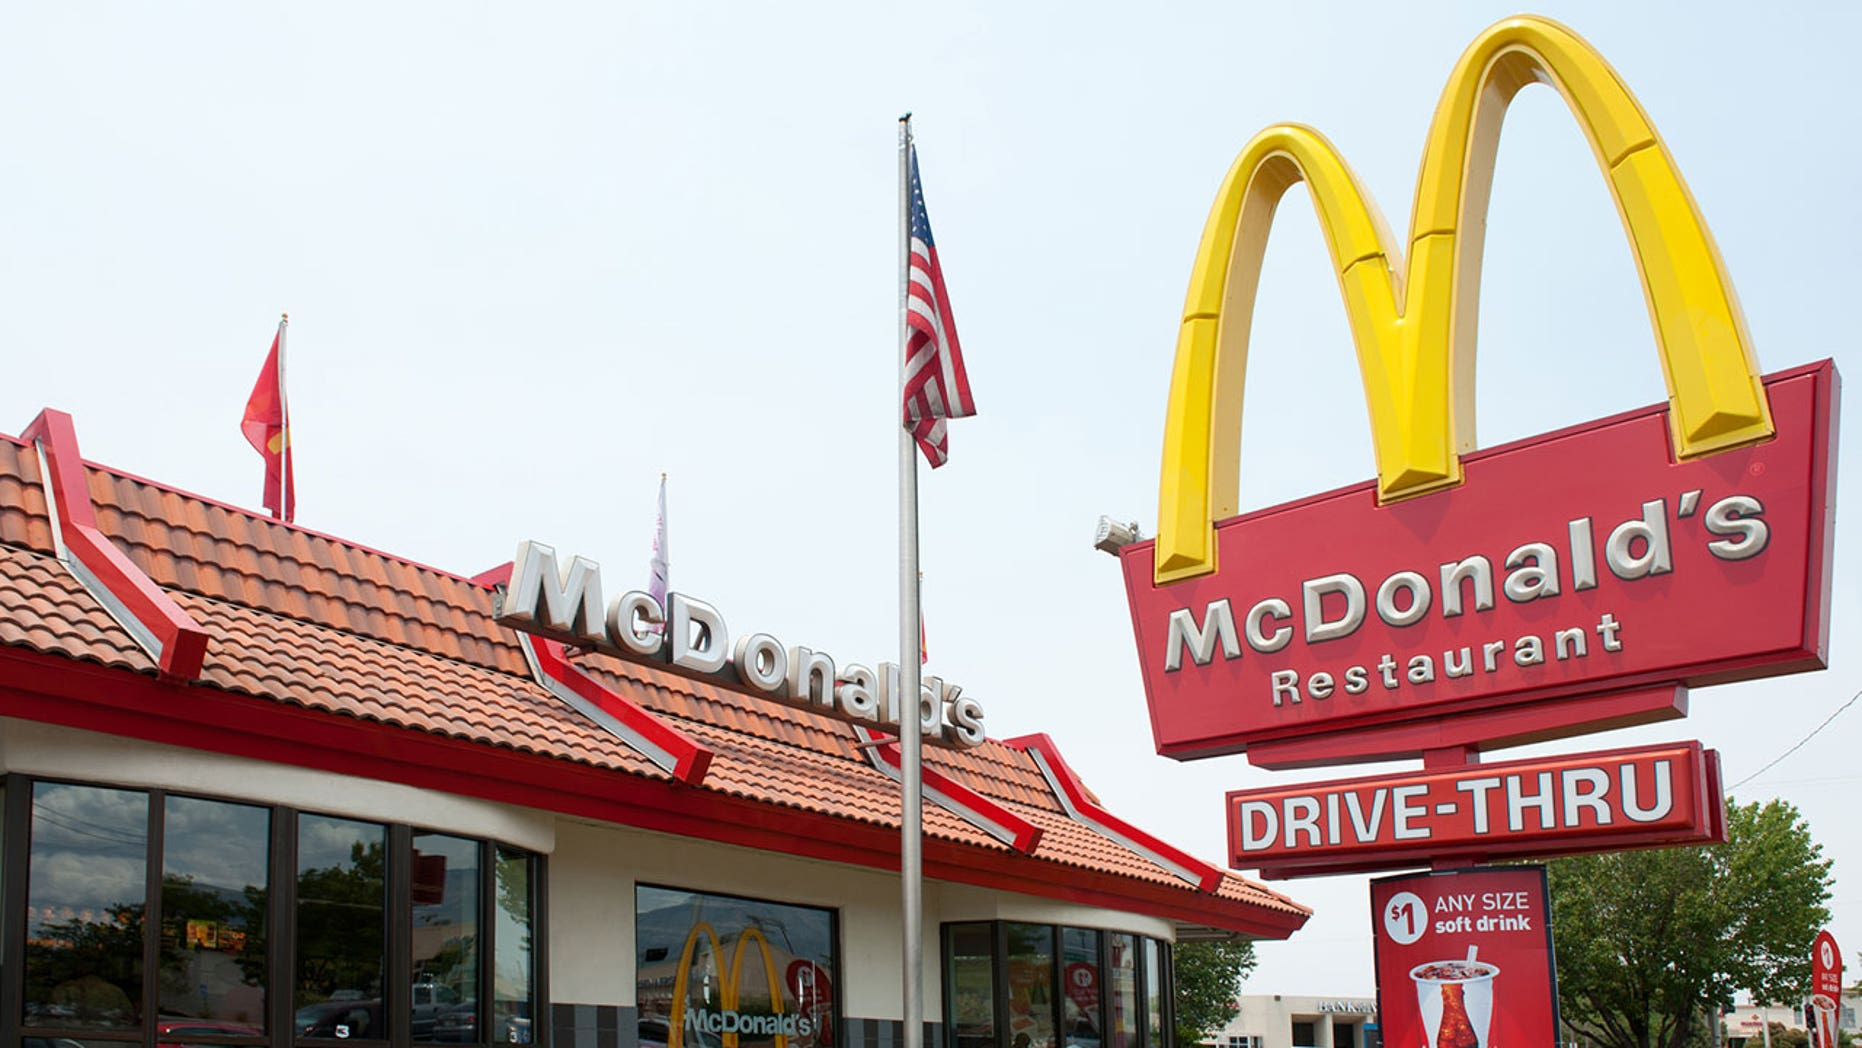 A Kentucky woman claims she found a needle in her McDonald's hamburger